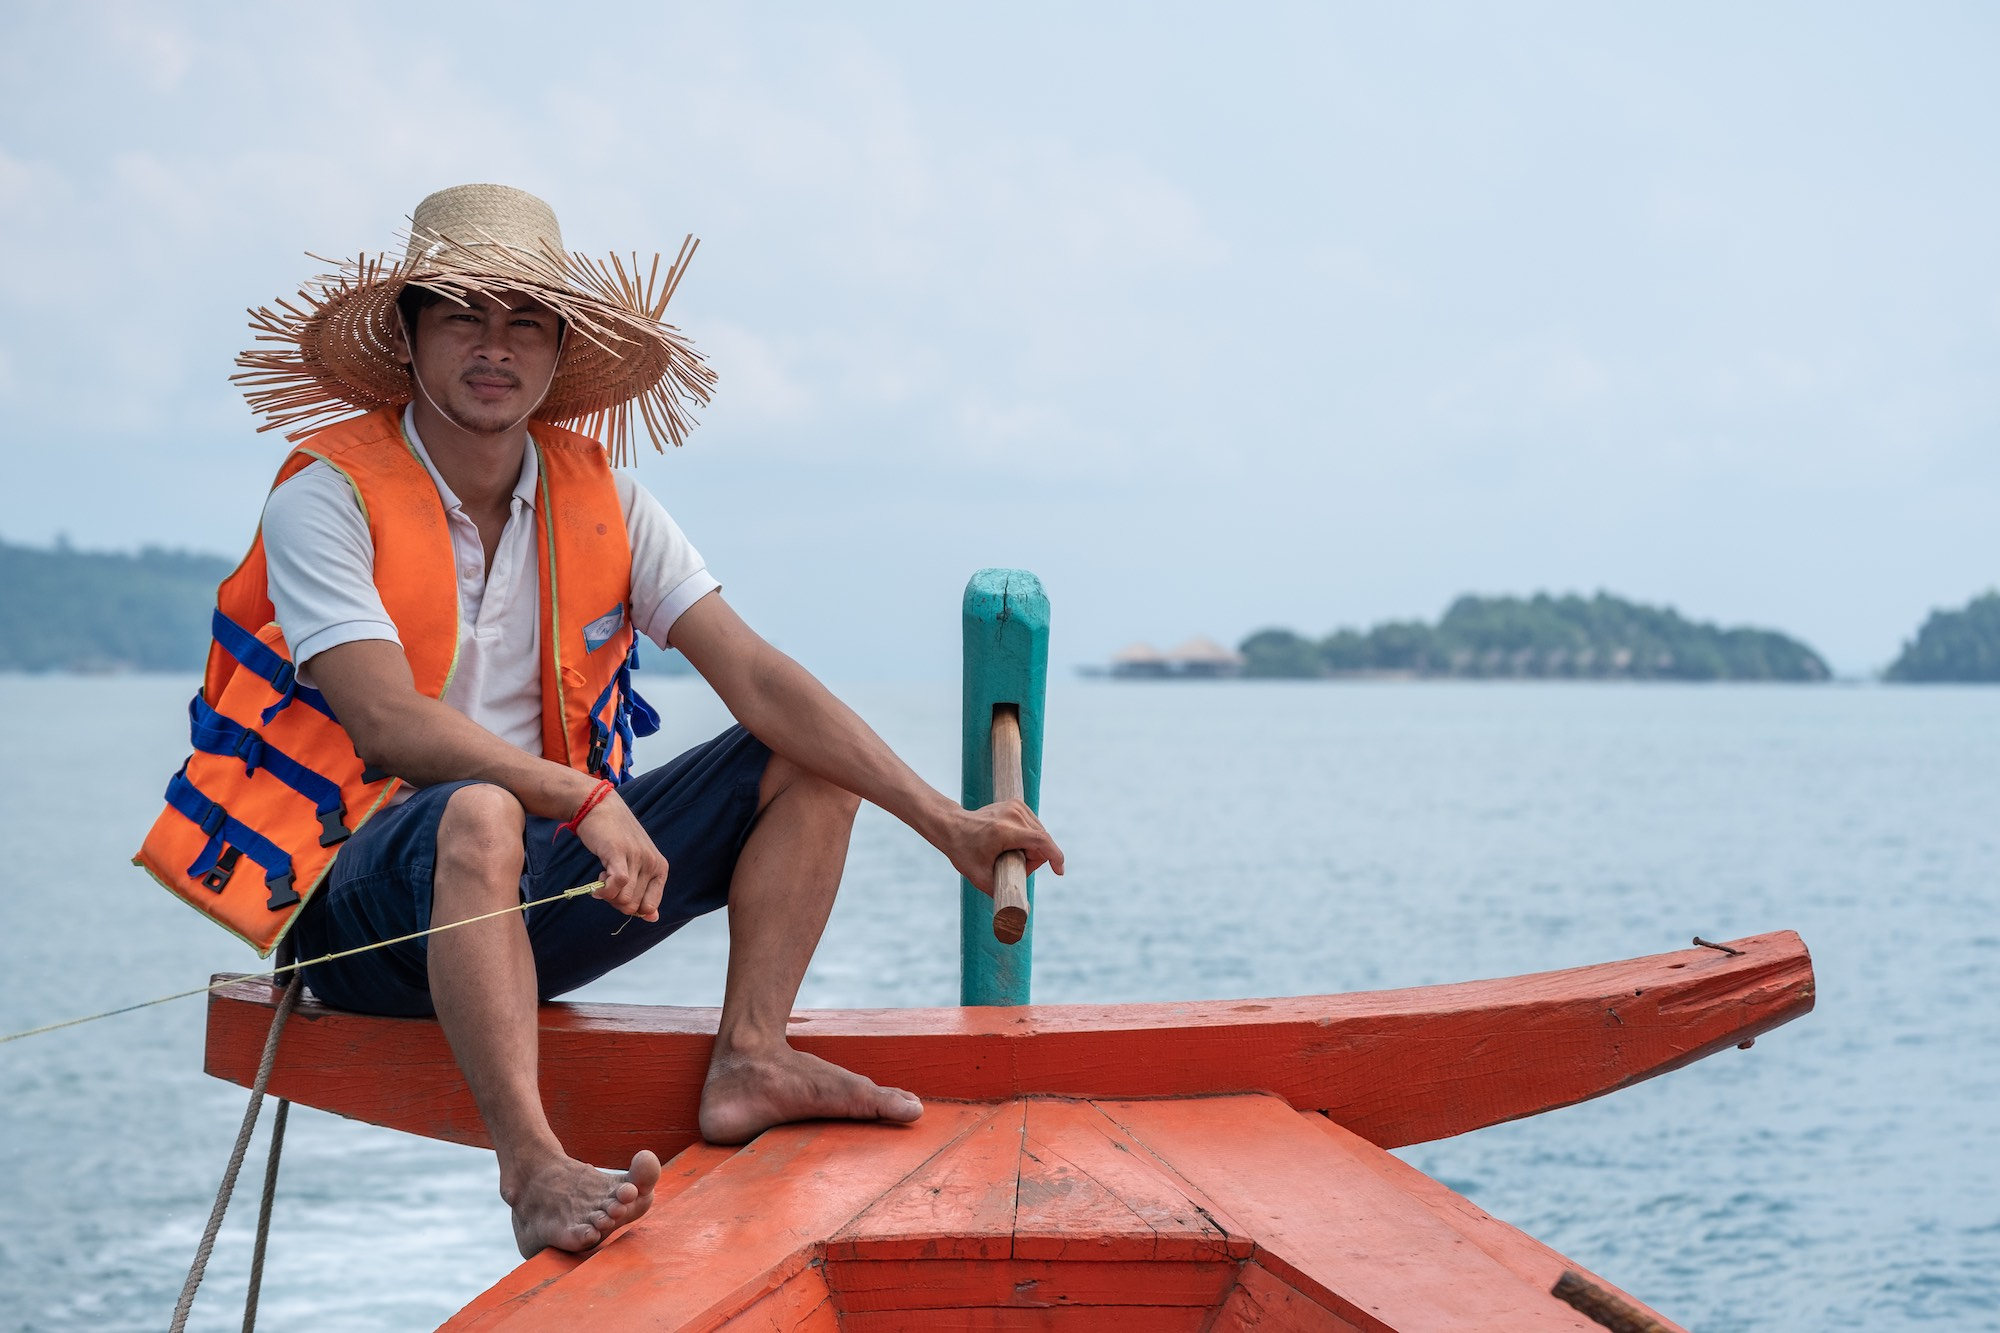 Tourism Travel Photography services commercial - Cambodia Song Saa Island